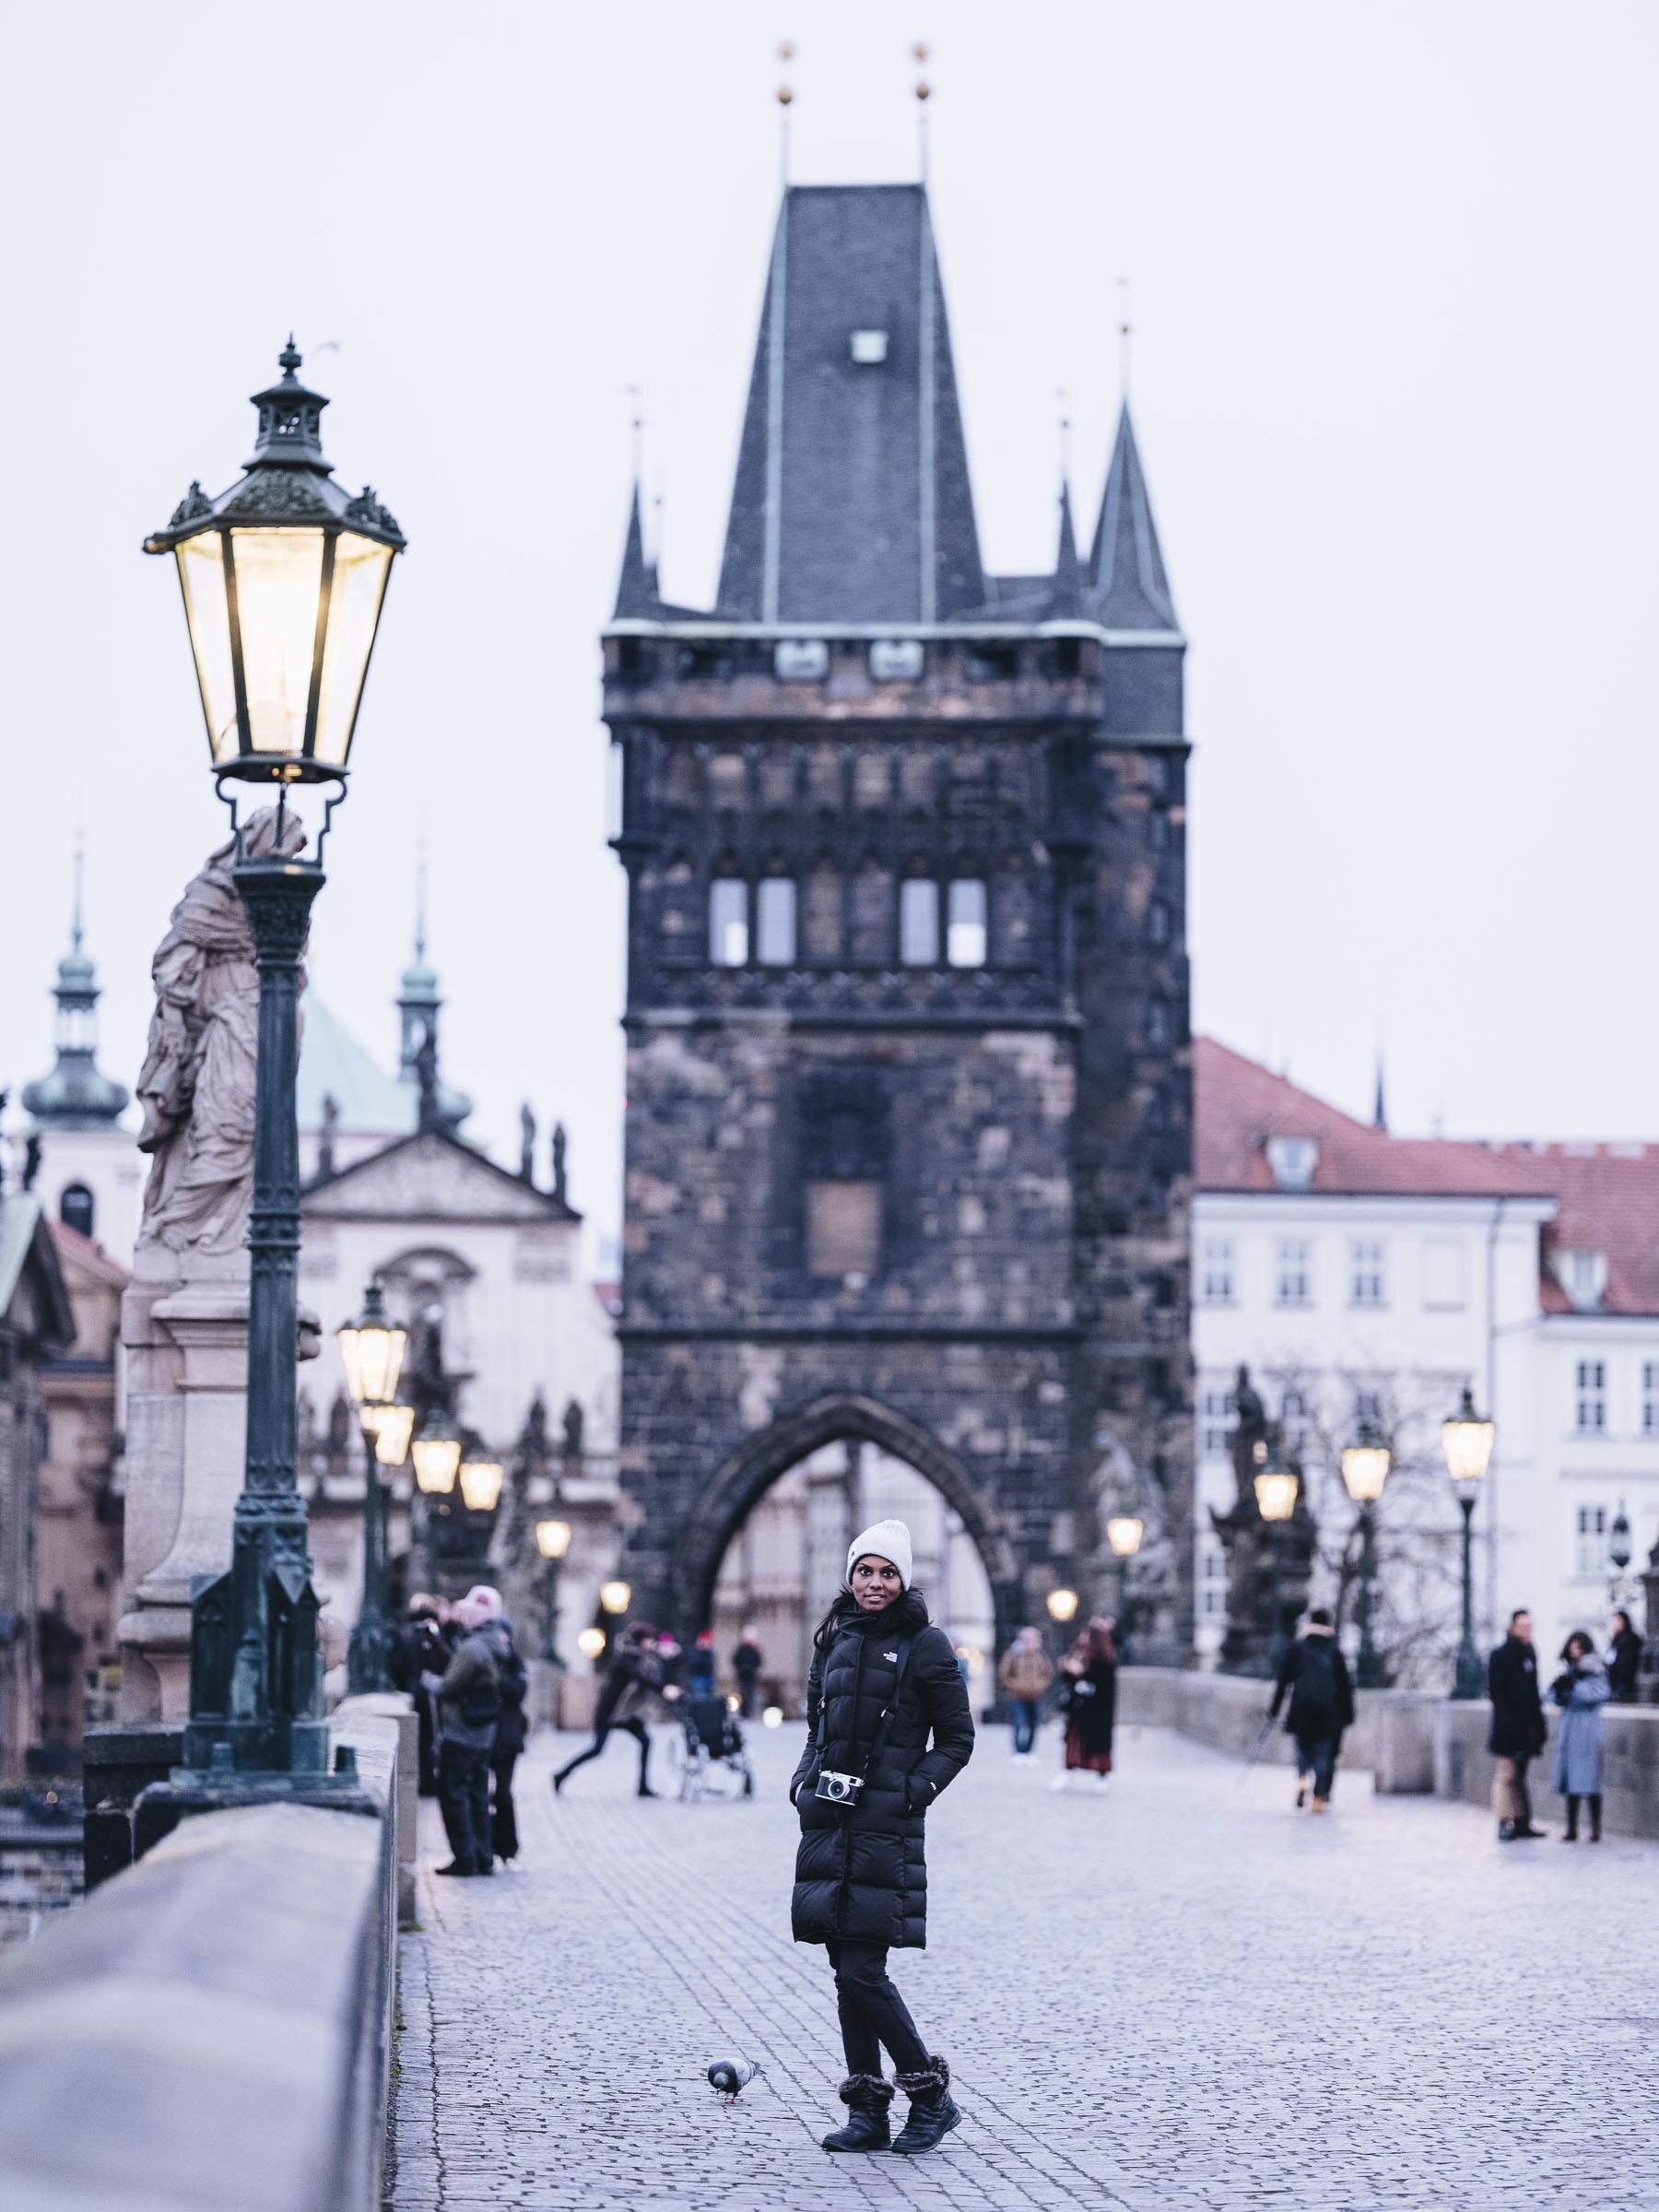 Shanthi Jeuland Prague cz bridge charles travel fujifilm gfx 50s photography photographer cityscape landscape travel voyage journey editorial trip